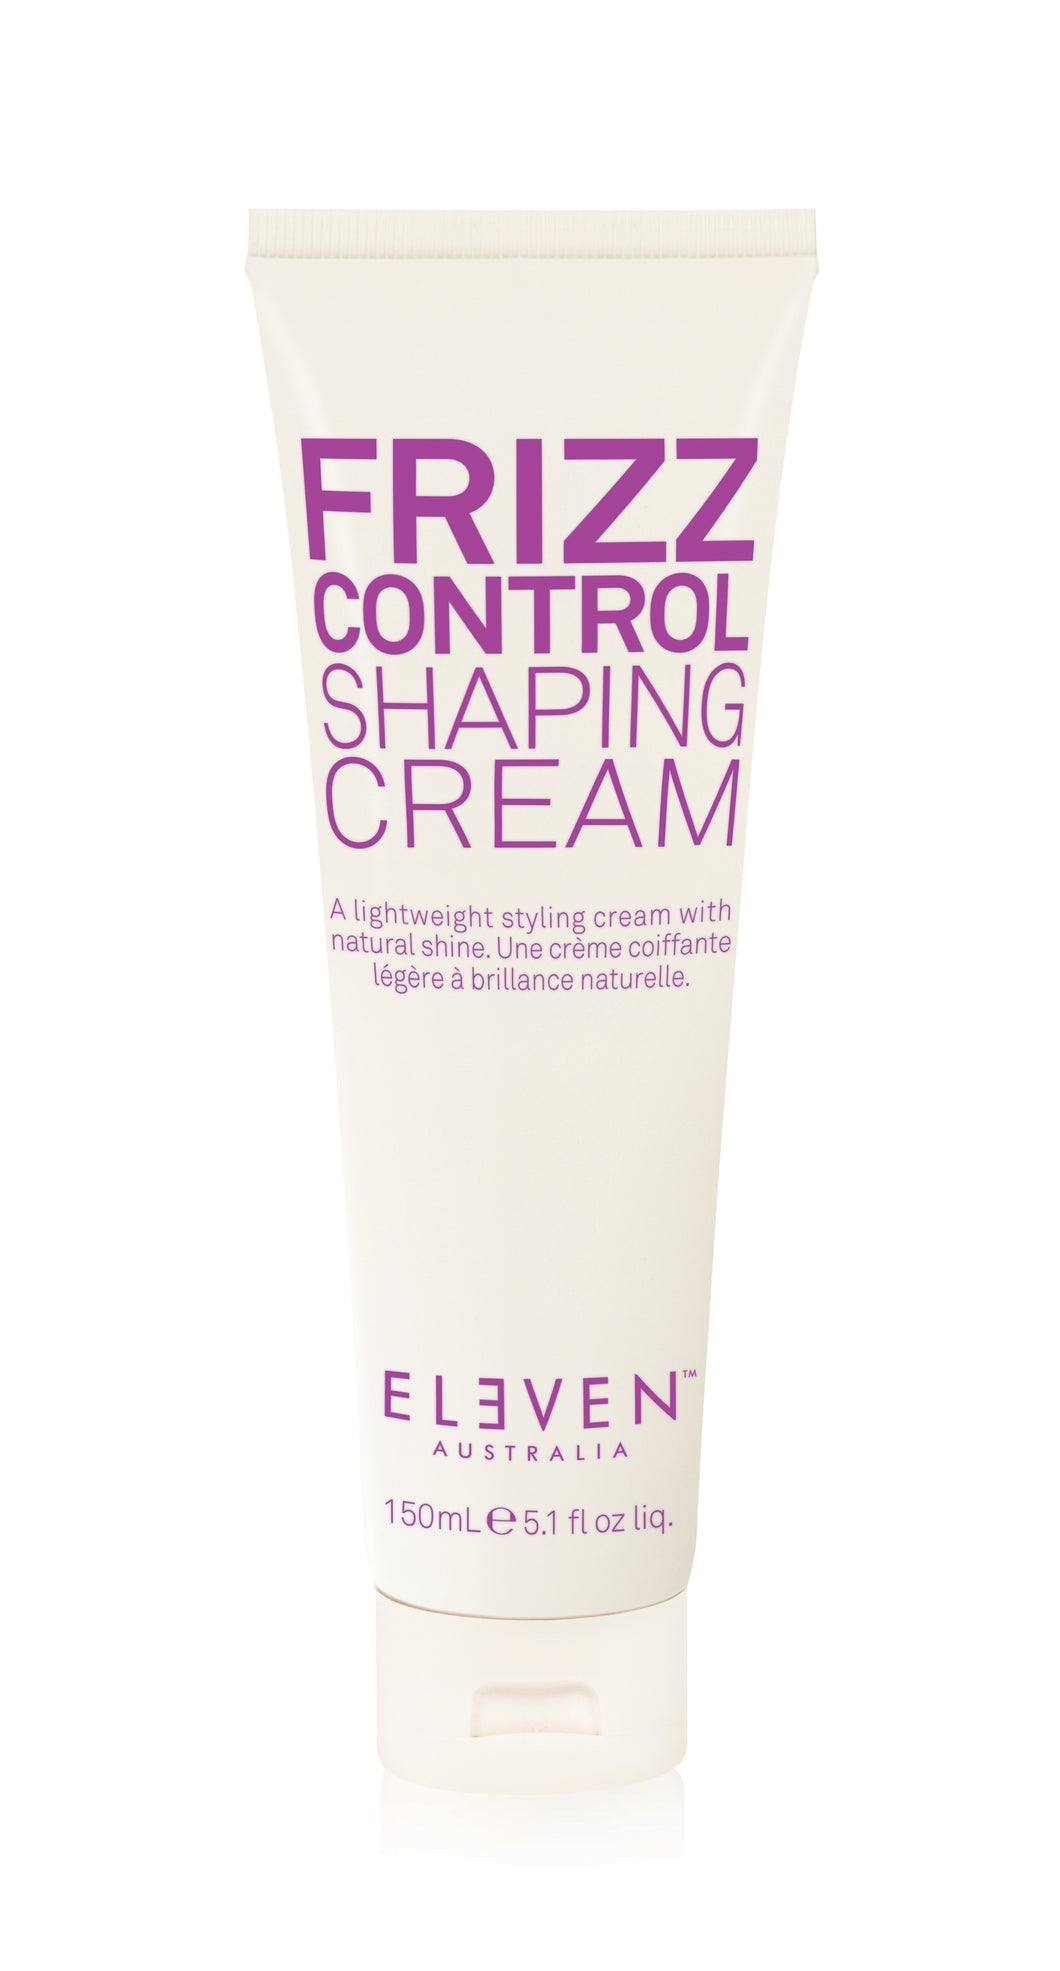 ELEVEN Frizz Control Shaping Cream